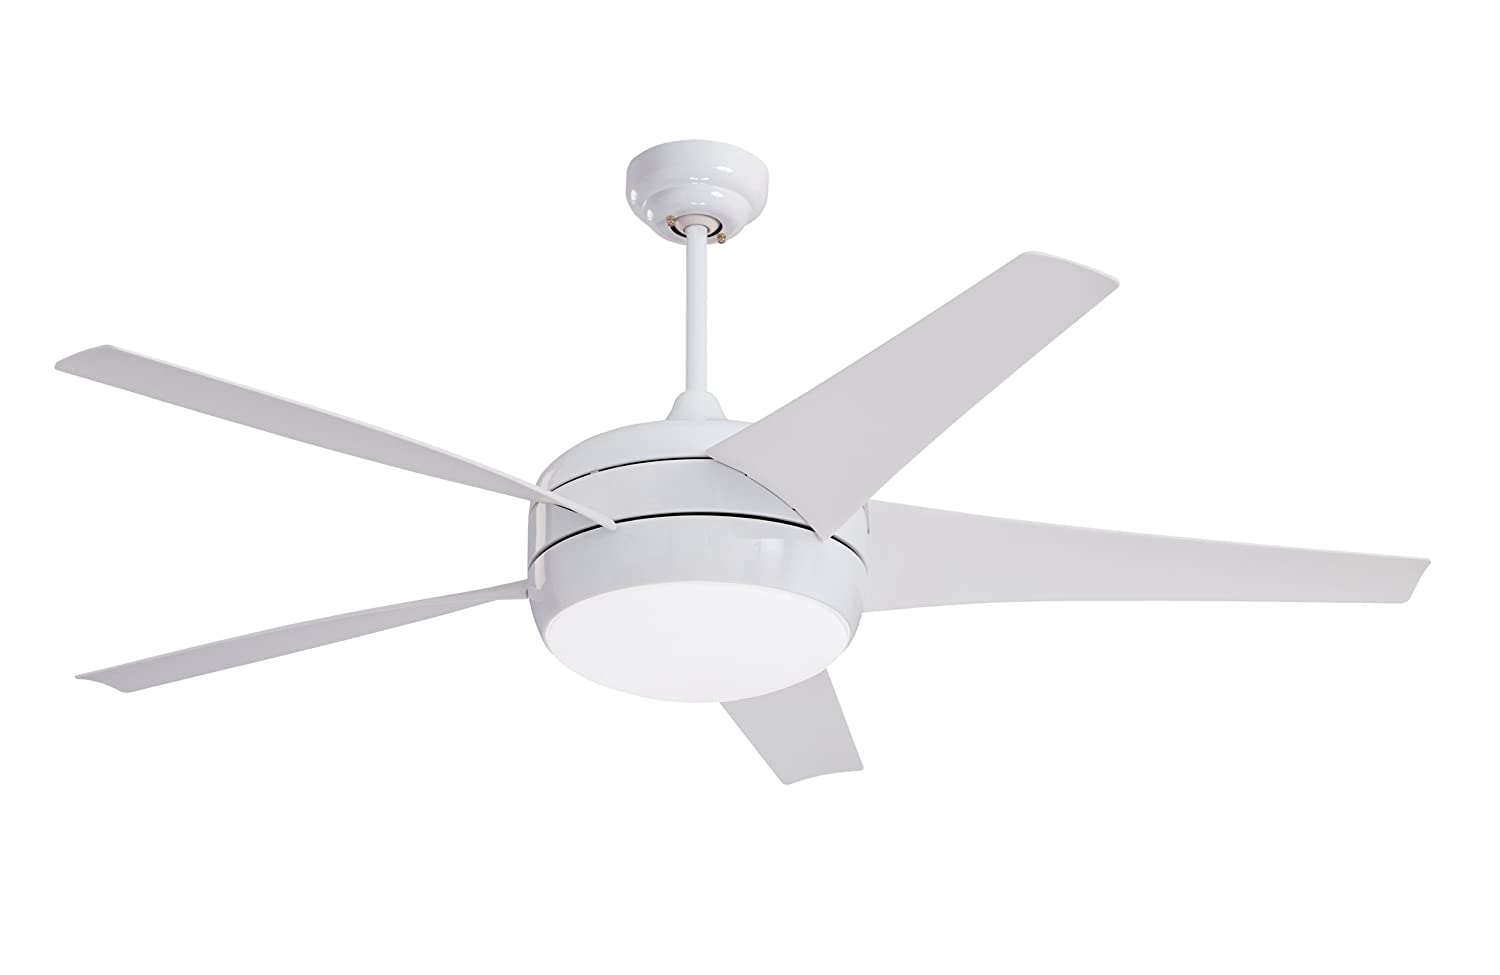 Emerson Ceiling Fans CF955WW Midway Eco Modern Energy Star Ceiling Fan With Light And Remote, 54-Inch Blades, Appliance White Finish